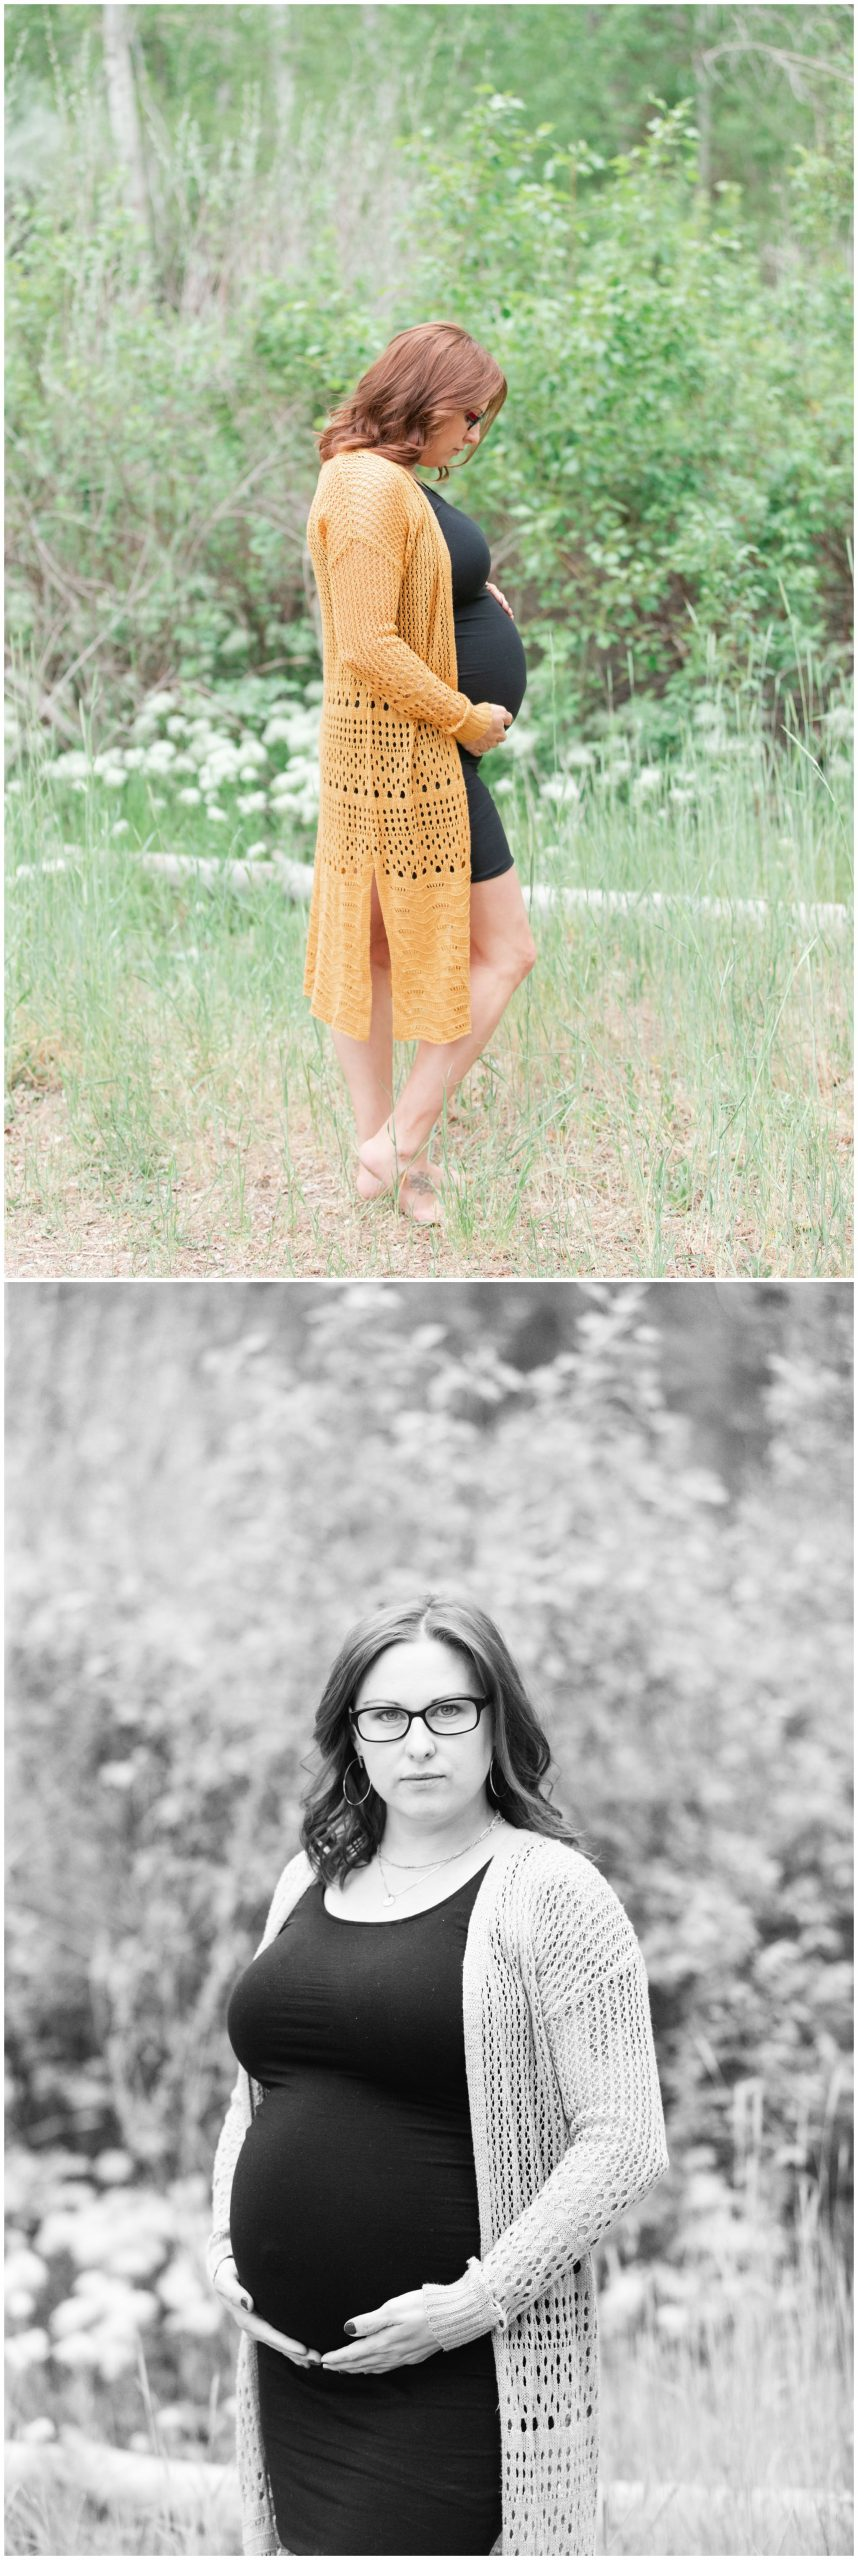 Summer Maternity Picture in Boise Idaho near the Foothills by the Military Reserve. Black and yellow maternity dress on pregnant woman.